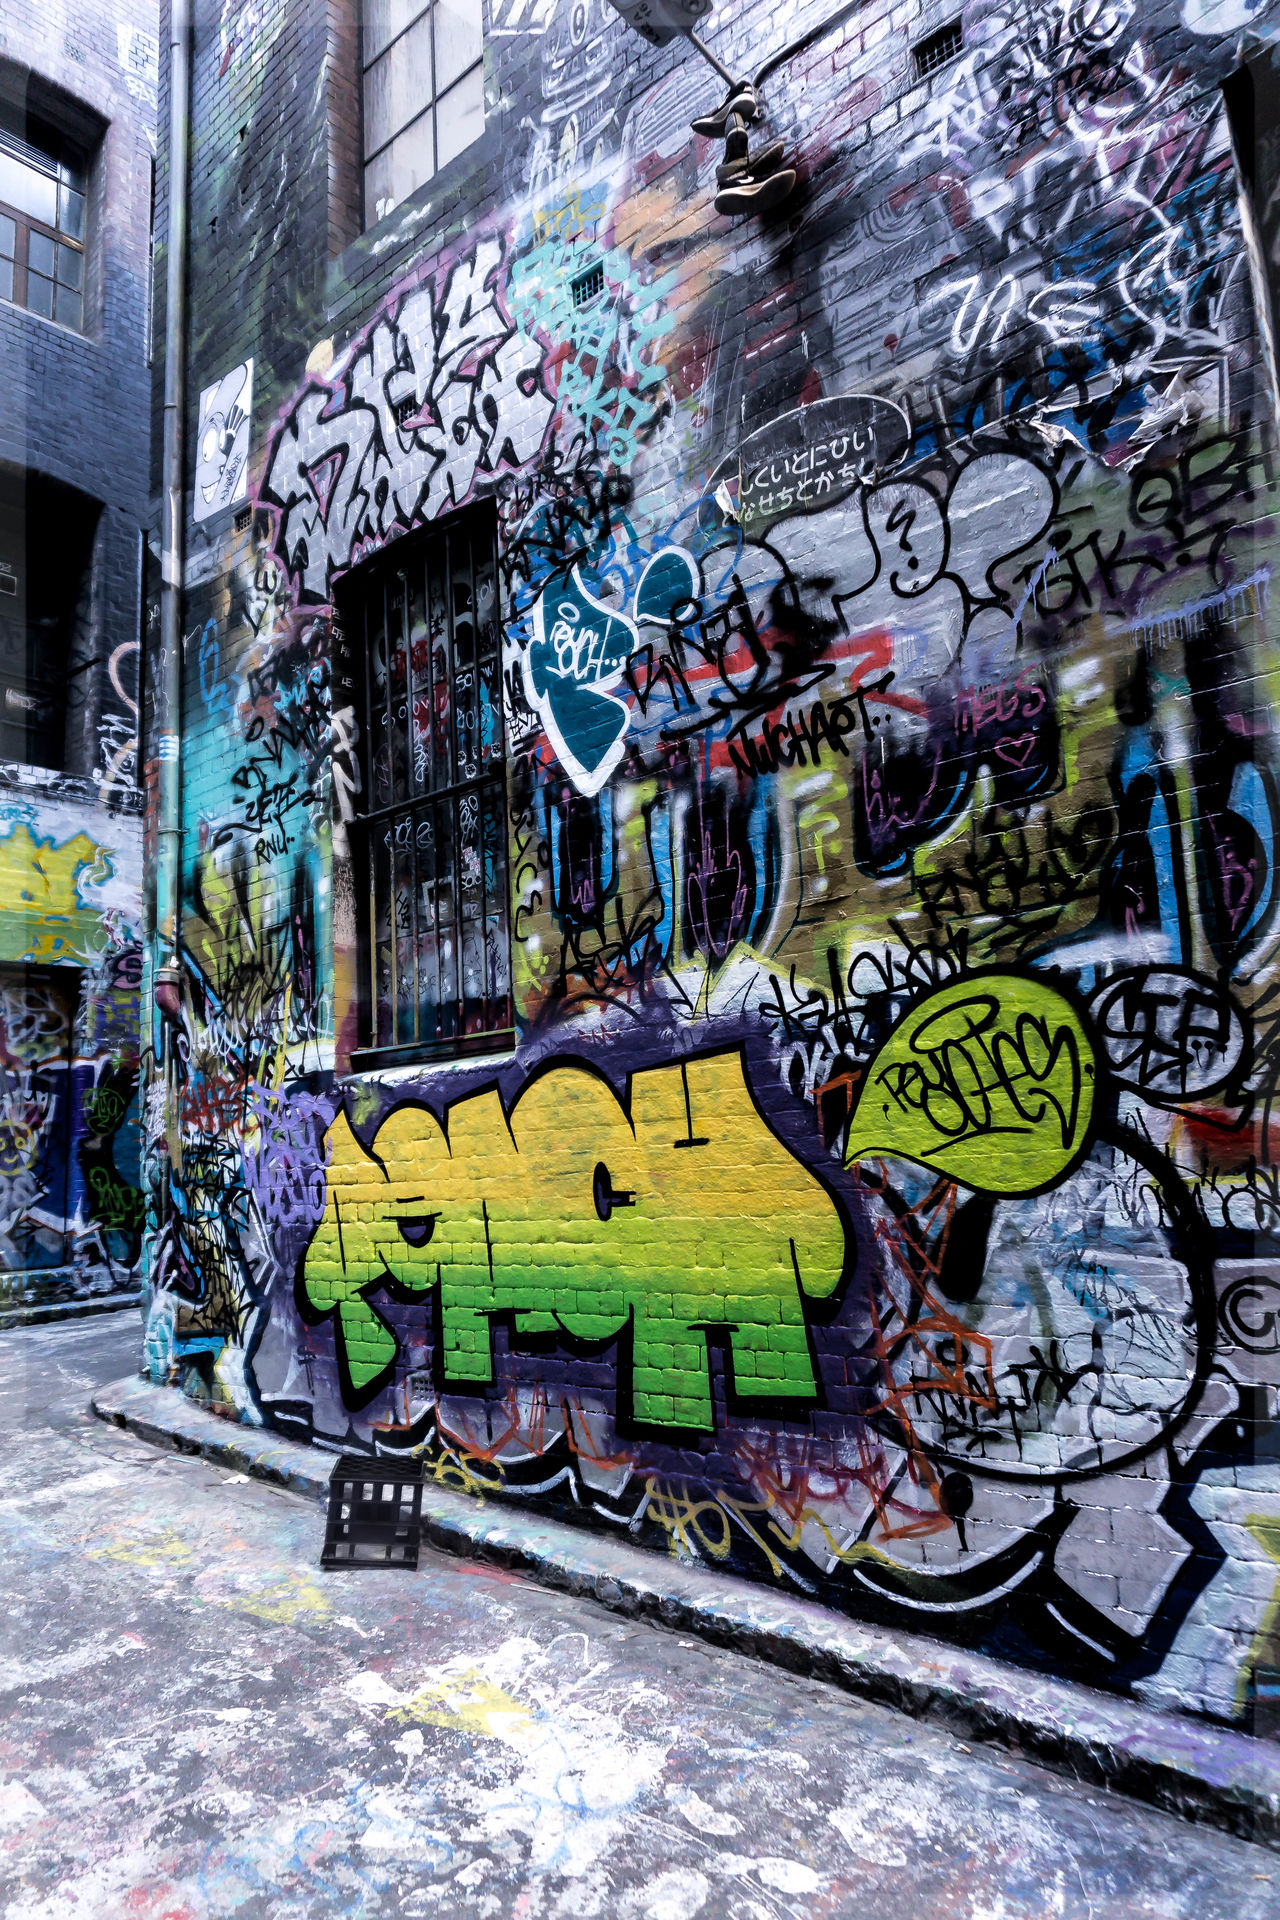 Architecture Art And Craft Australia Building Exterior Built Structure City Clutter Day Graffiti Hosier Lane Melbourne Modern Multi Colored Neon No People Outdoors Painted Image Street Street Art Streetphotography